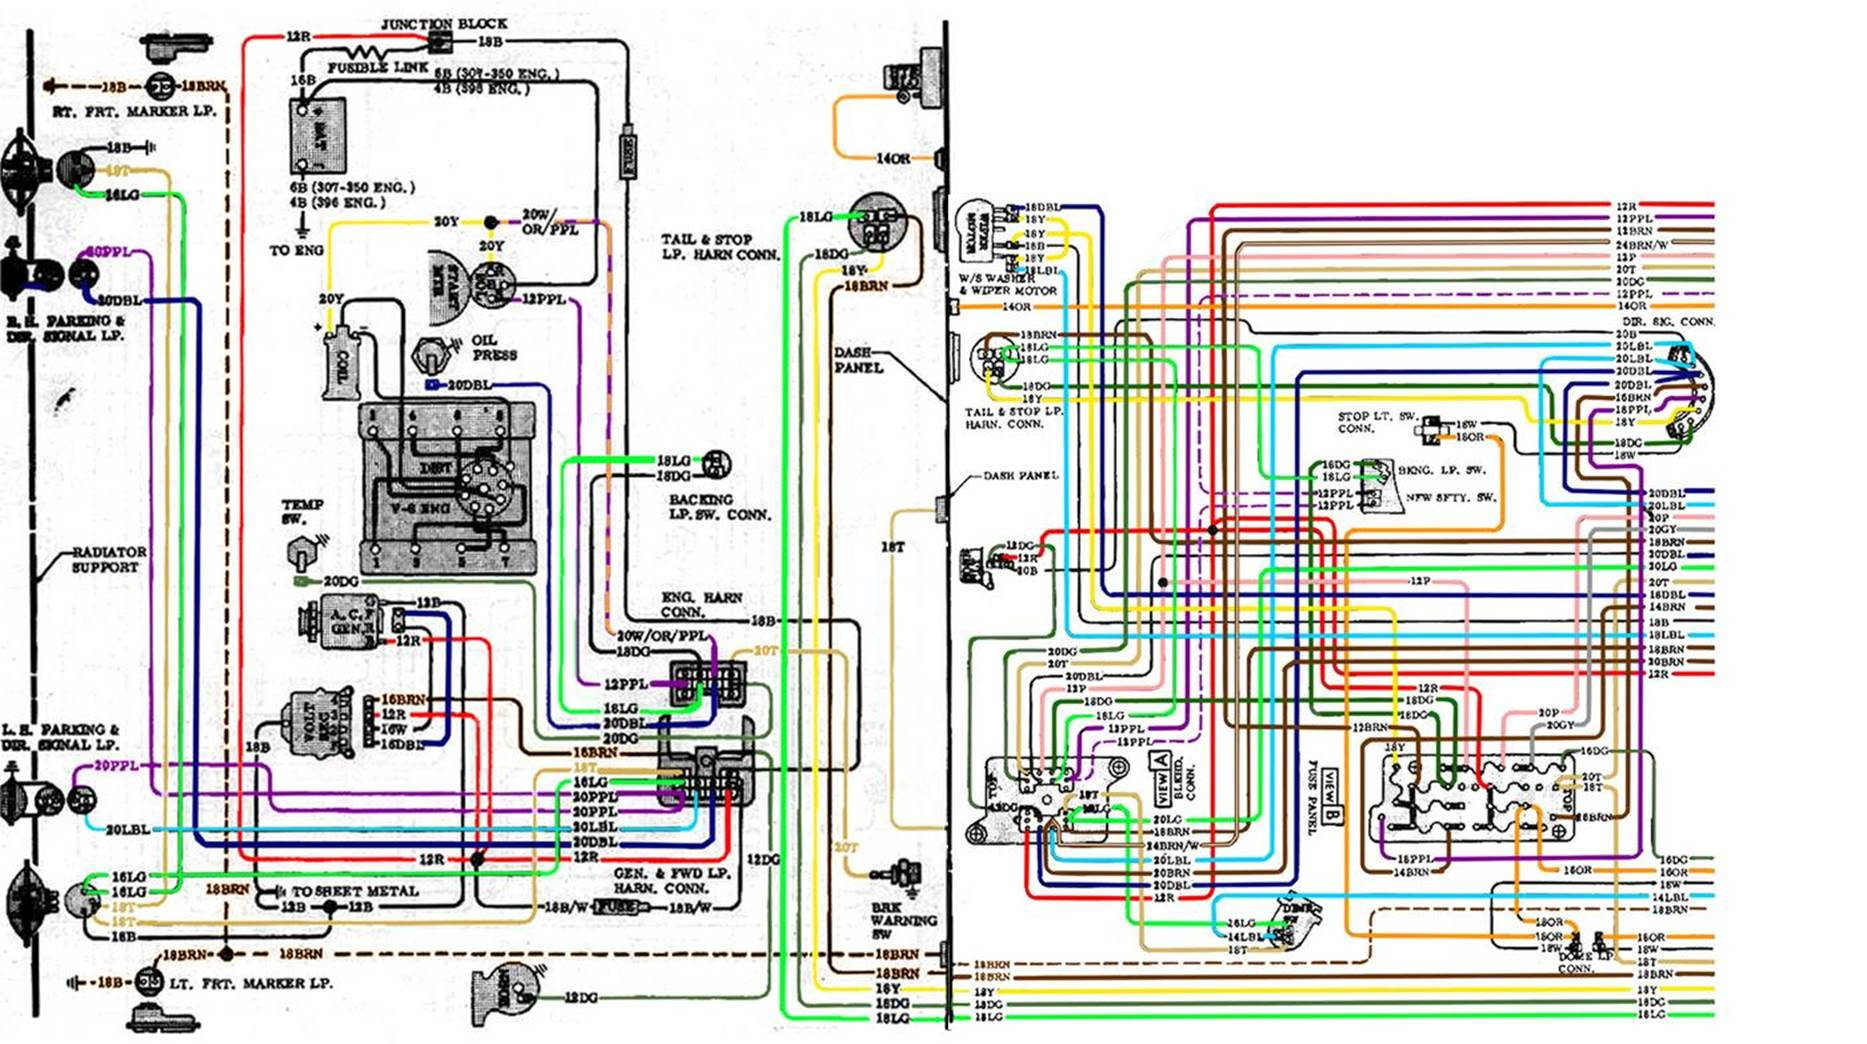 image002 67 72 chevy wiring diagram chevy truck wiring harness at soozxer.org